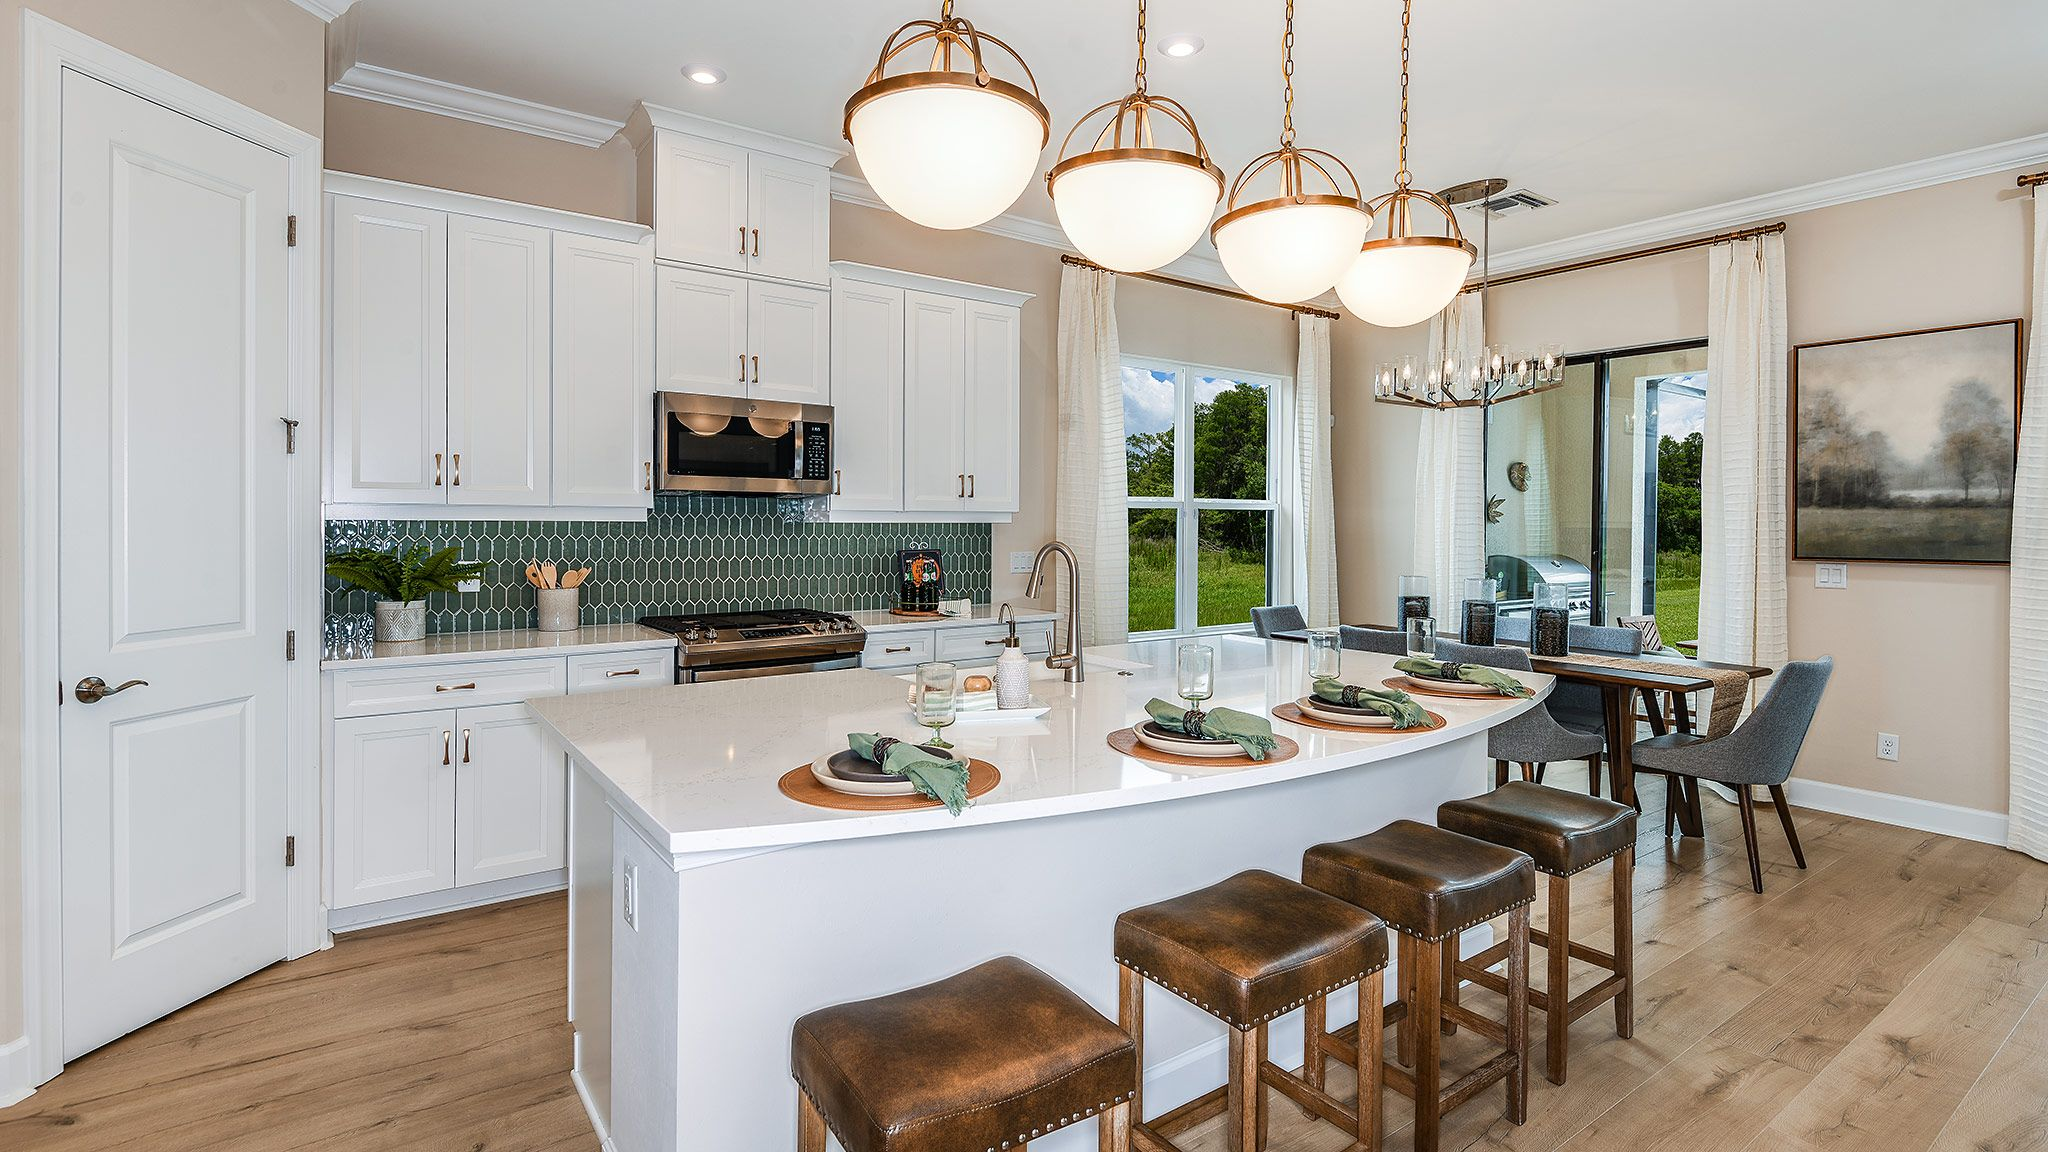 Kitchen featured in the Farnese Plan By Taylor Morrison in Naples, FL